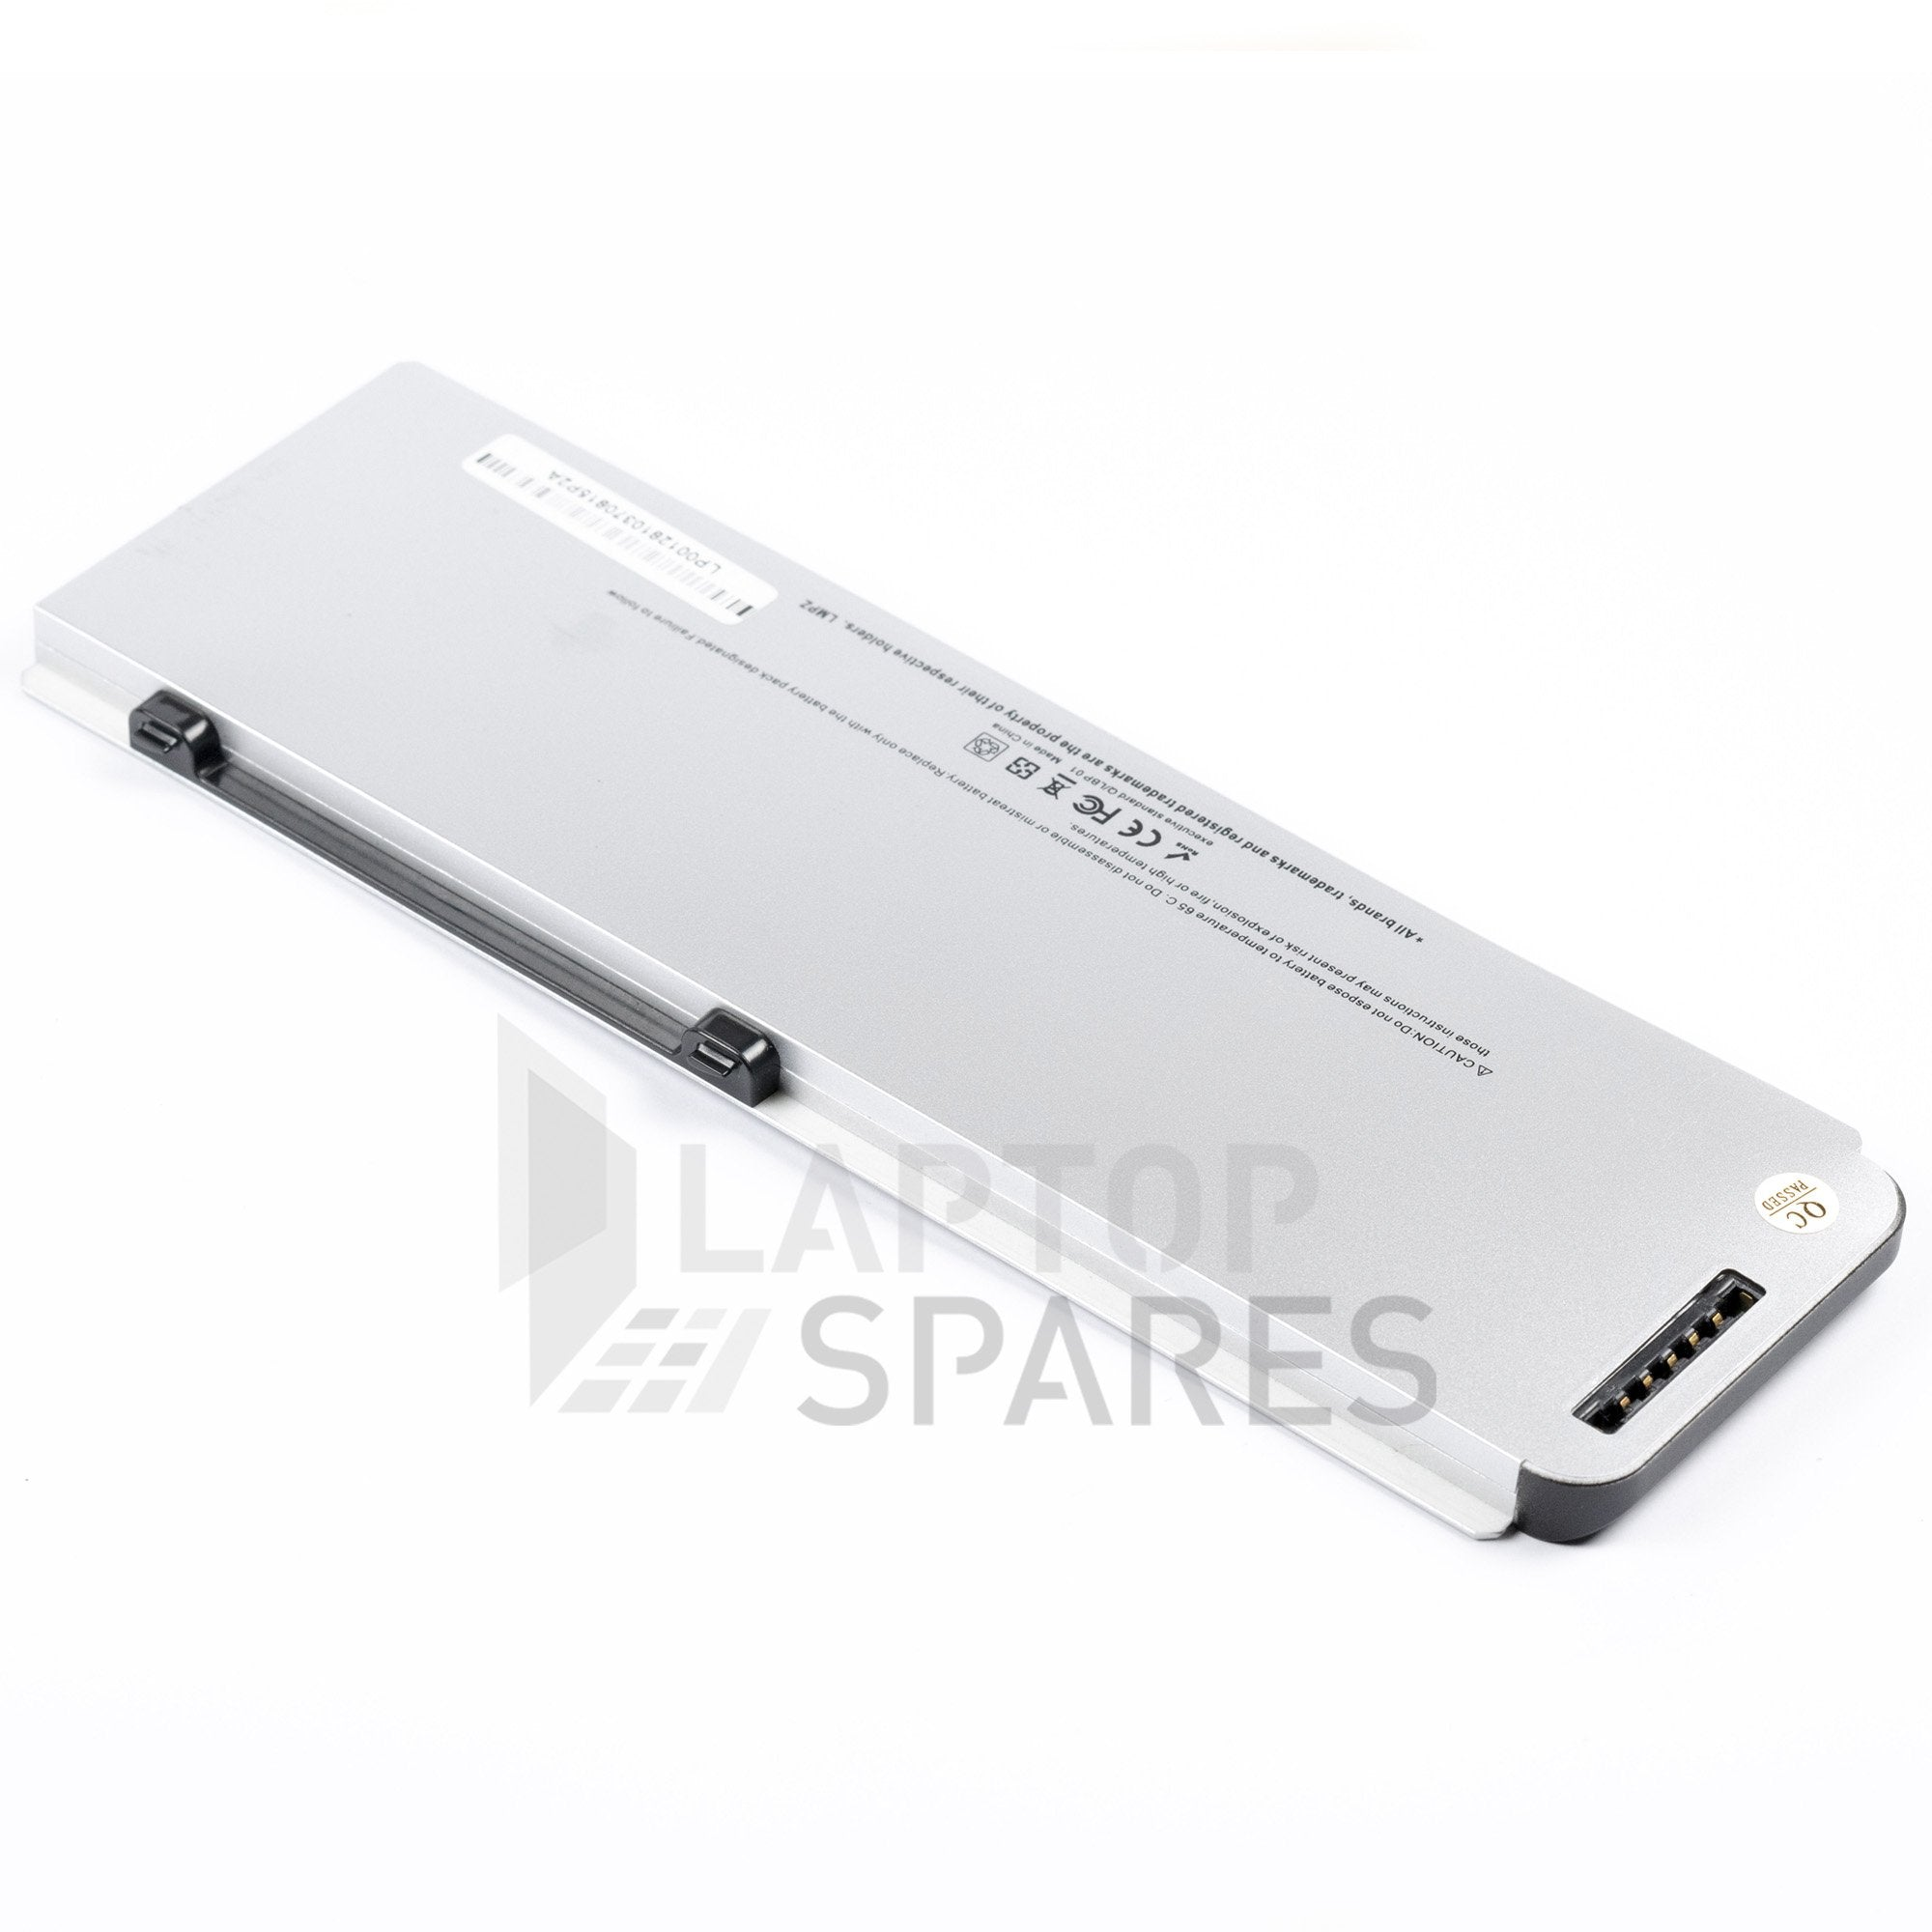 Apple MacBook PRO 15 MB471*/A 4600mAh 6 Cell Battery